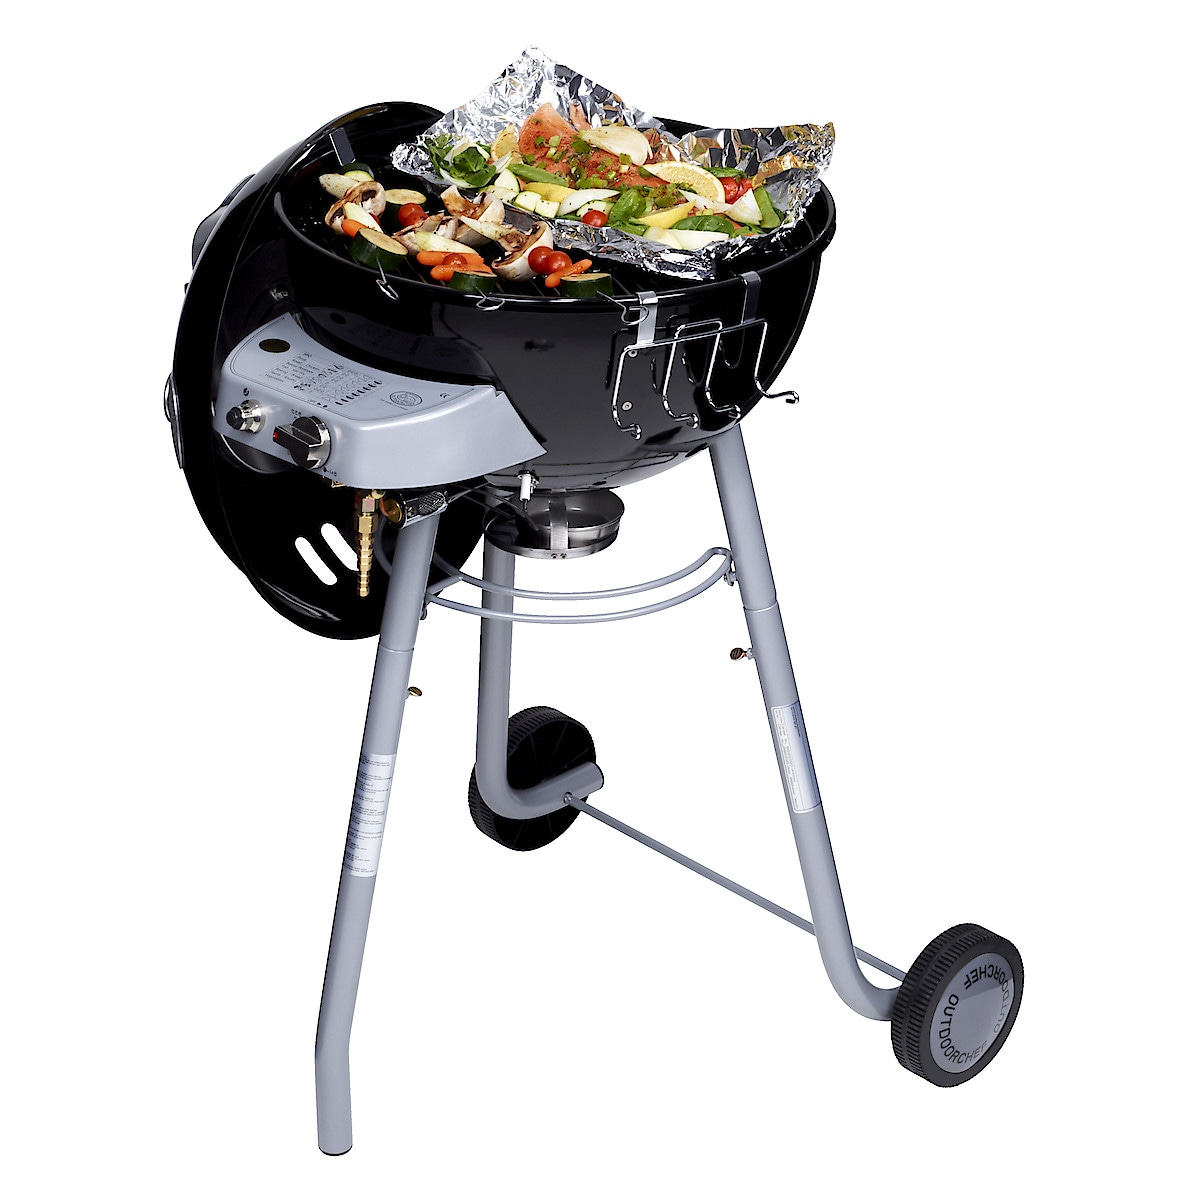 Gasolklotgrill Outdoorchef Porto